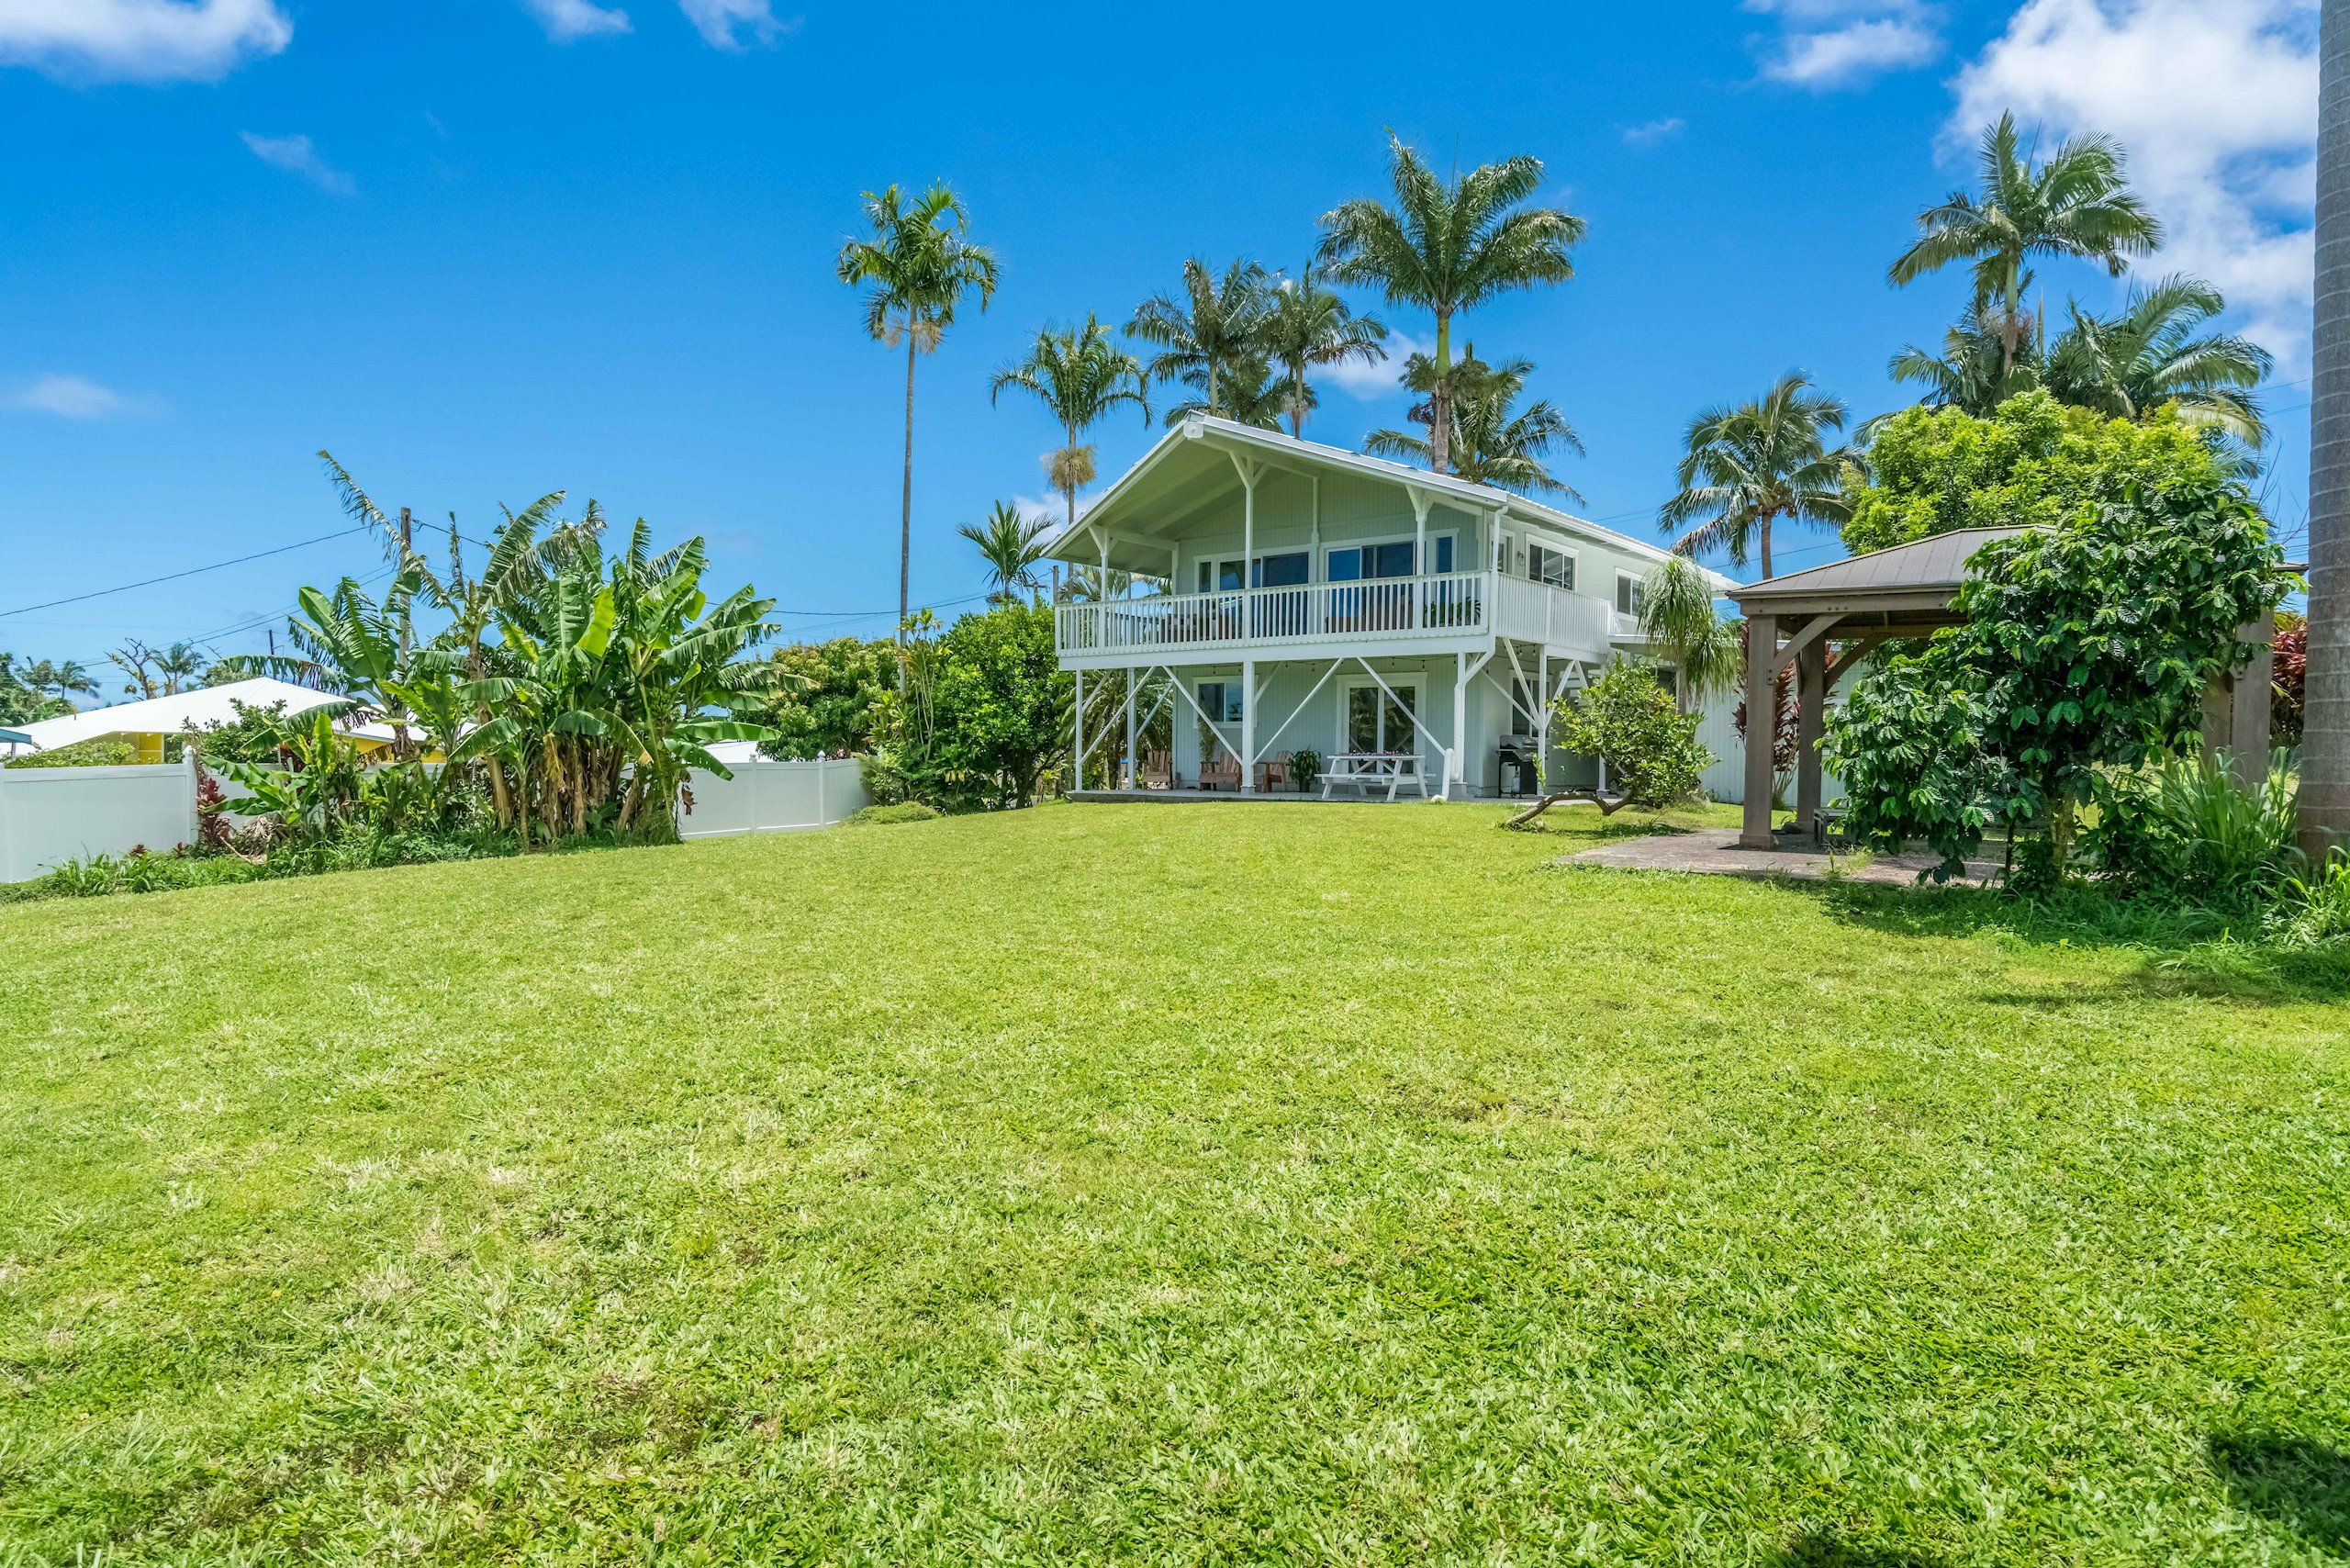 Huge yard with plenty of space for activities or to build a second guest house!